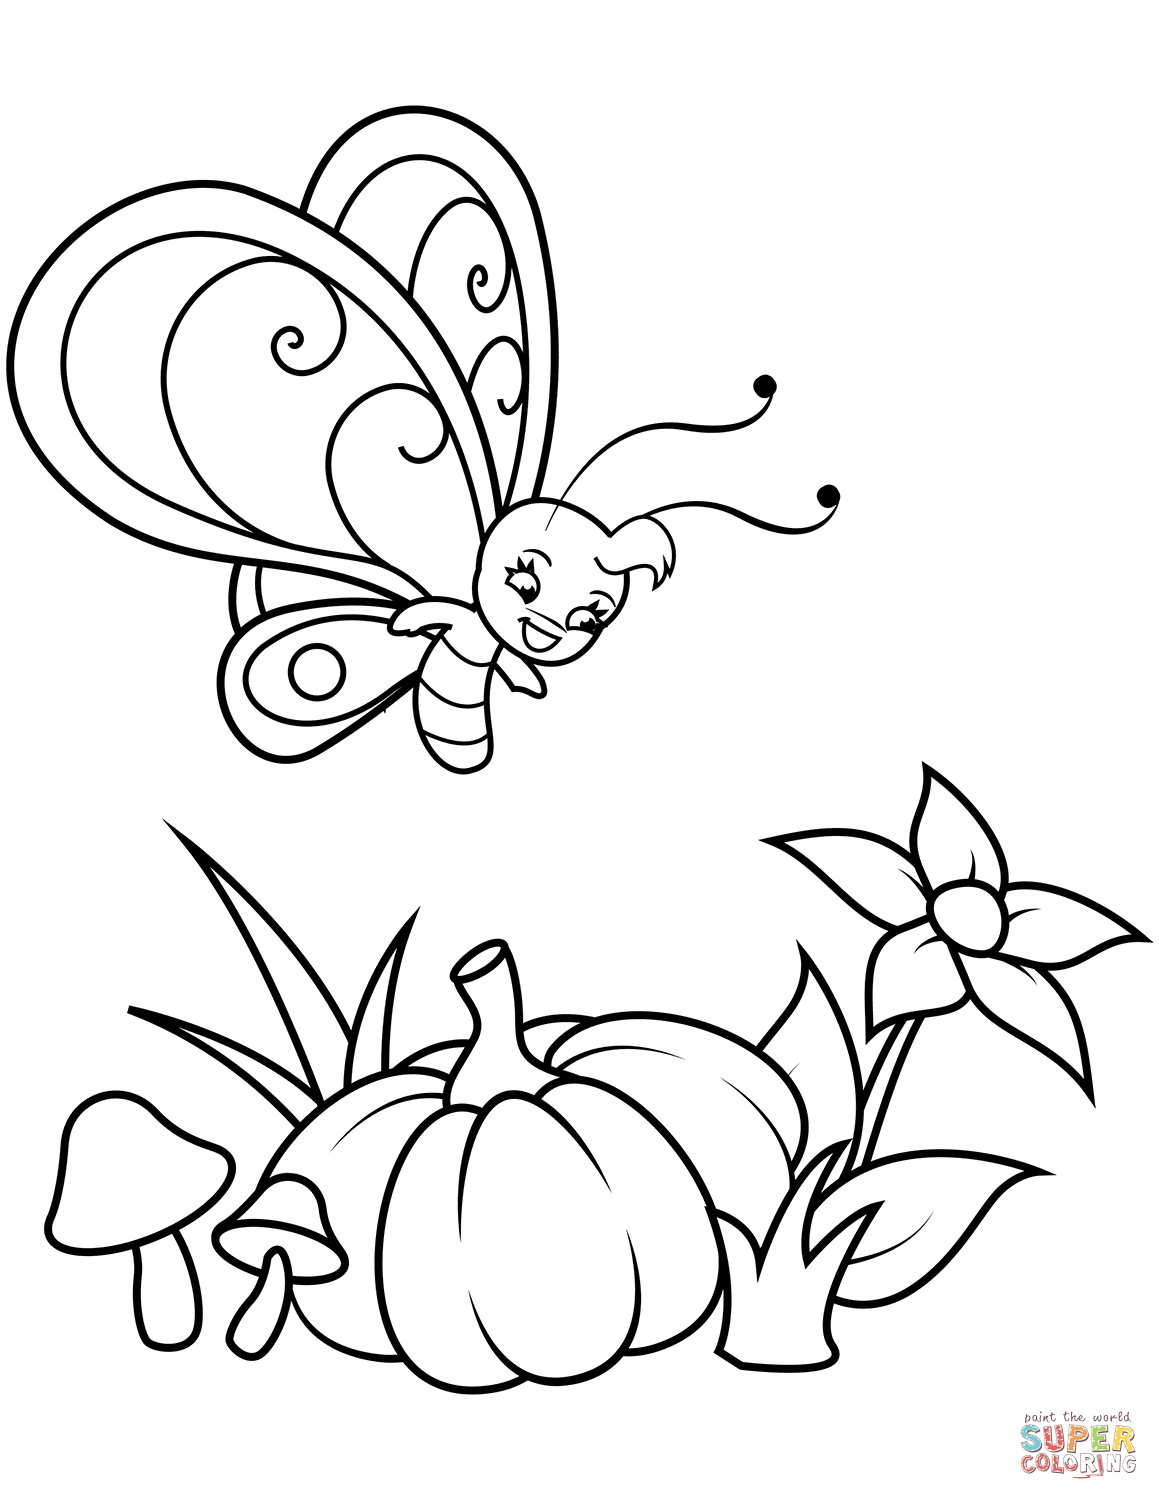 cute pumpkin coloring pages free printable pumpkin coloring pages for kids cool2bkids coloring pumpkin cute pages